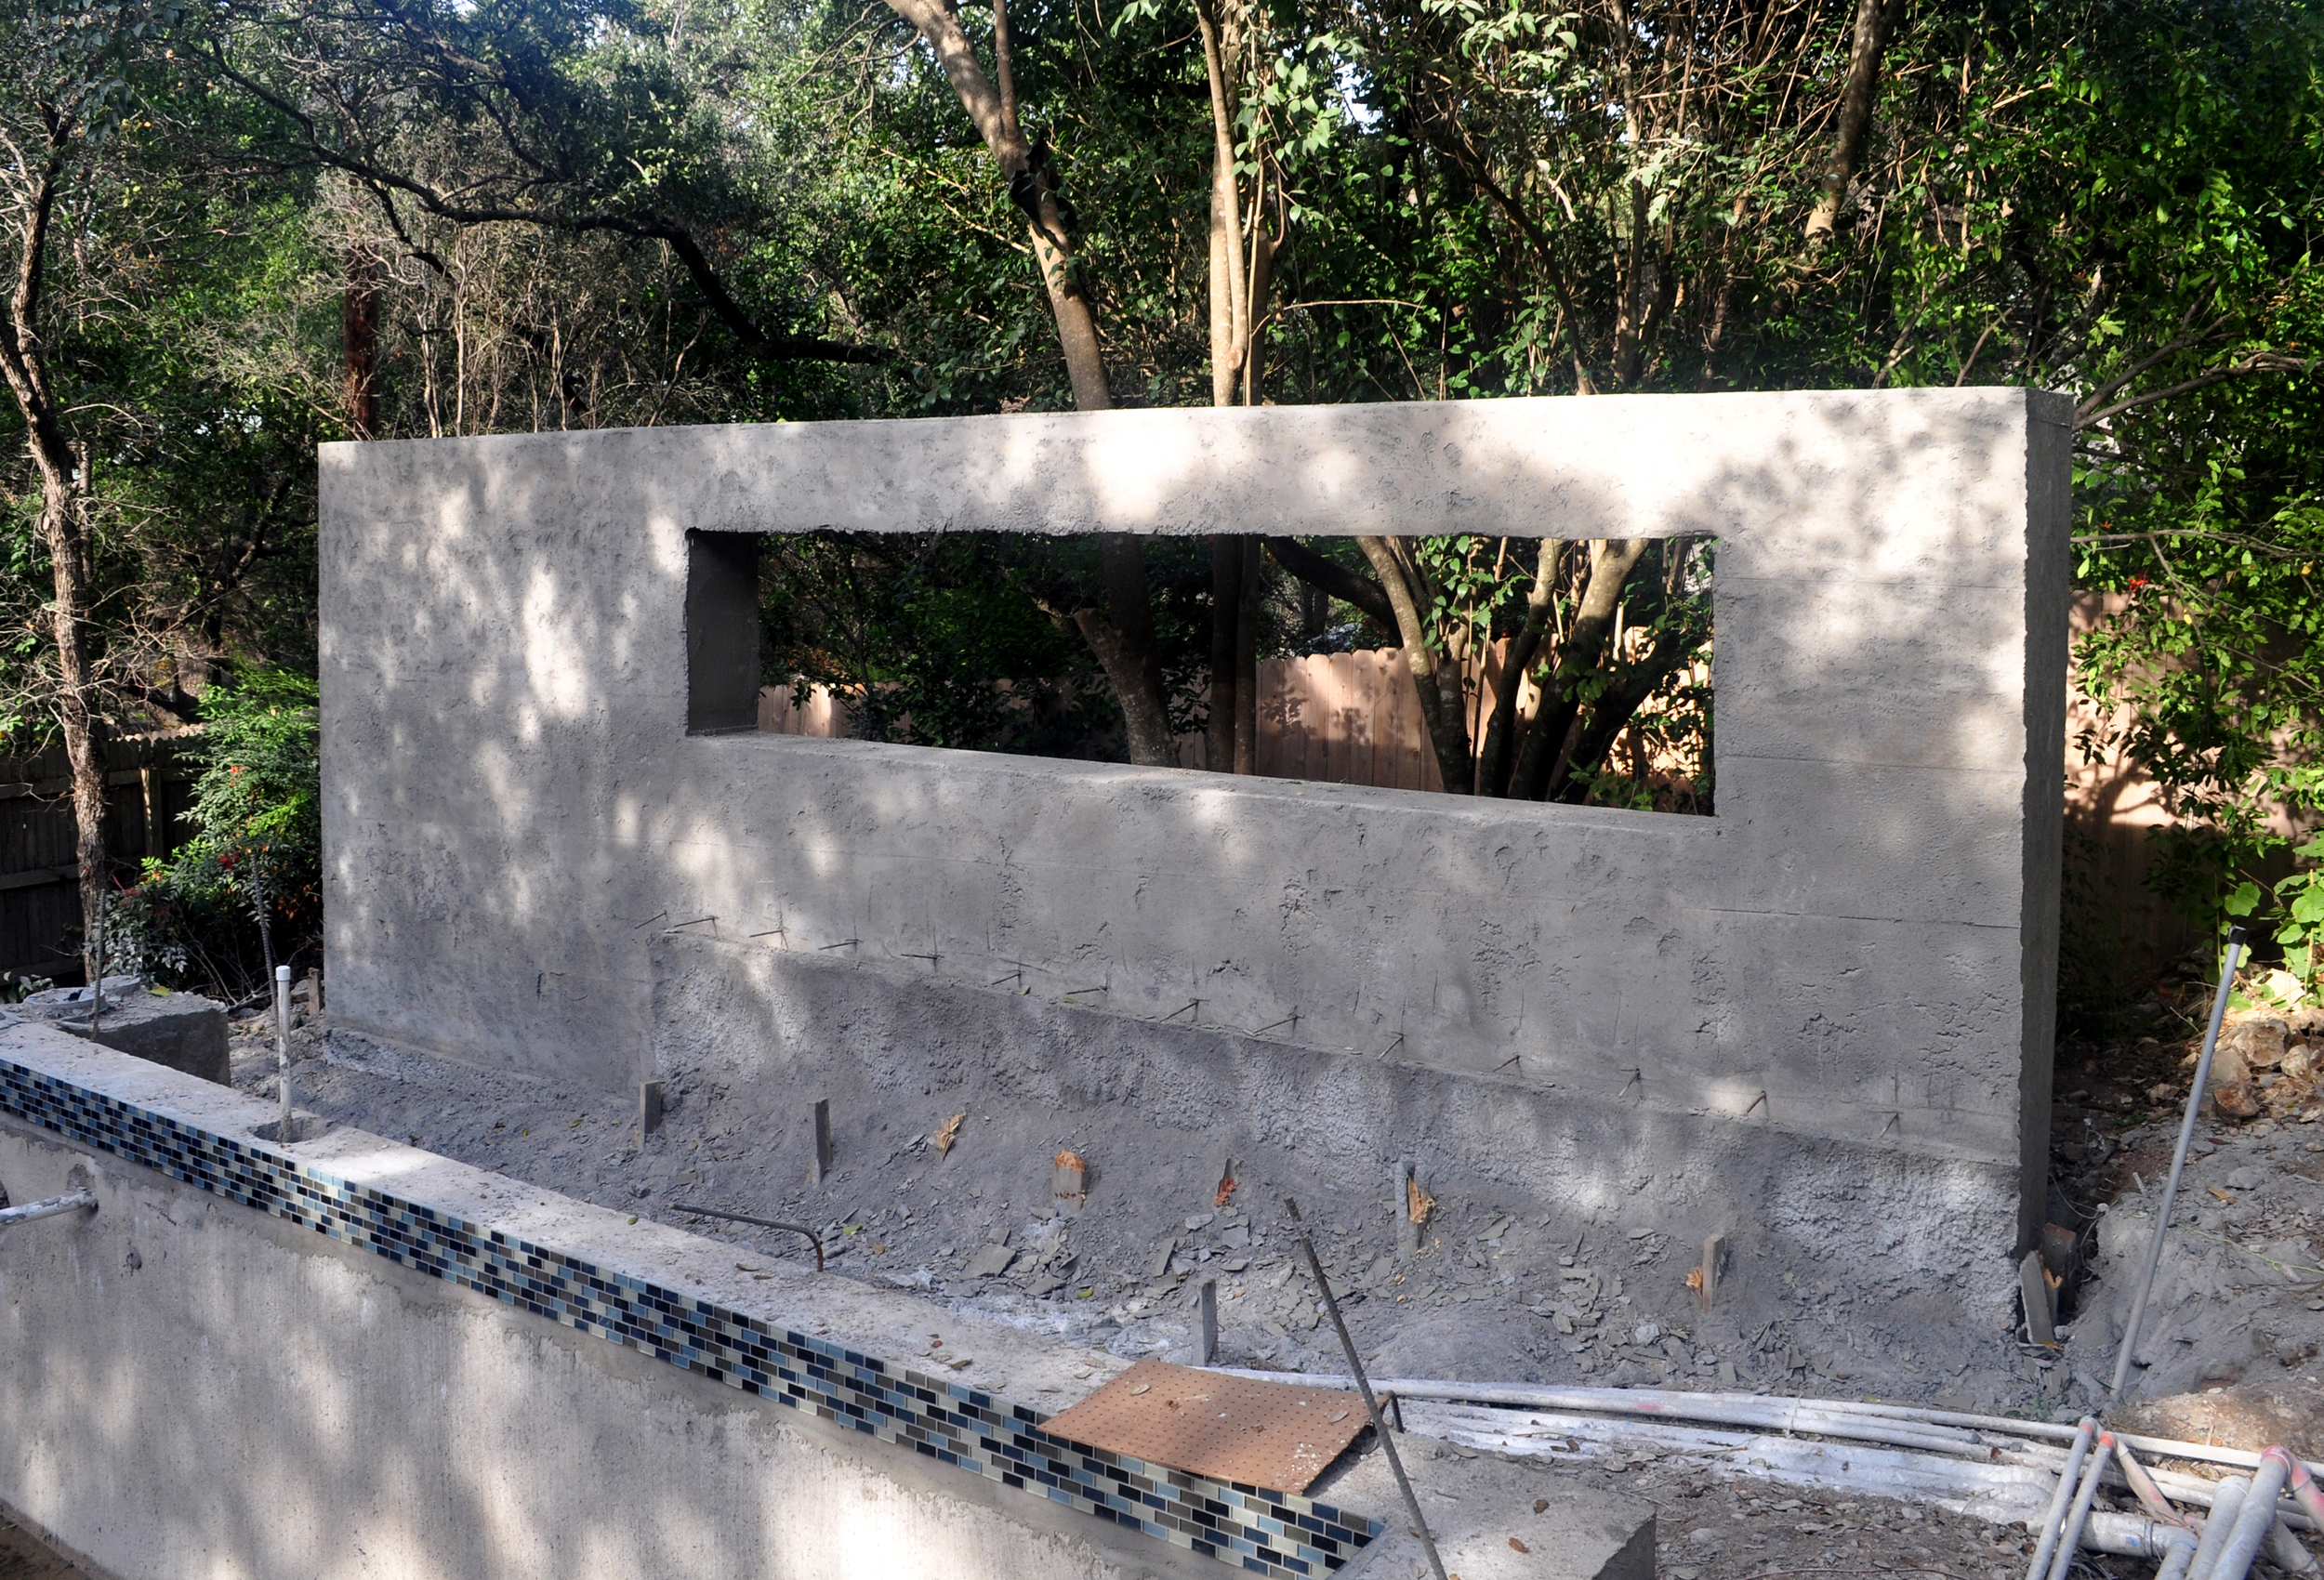 Shotcrete process complete. A more preciseshape (but still rough) is achieved by hand-shaping the concrete while still wet. This wall will receive a finish application of exterior plaster.